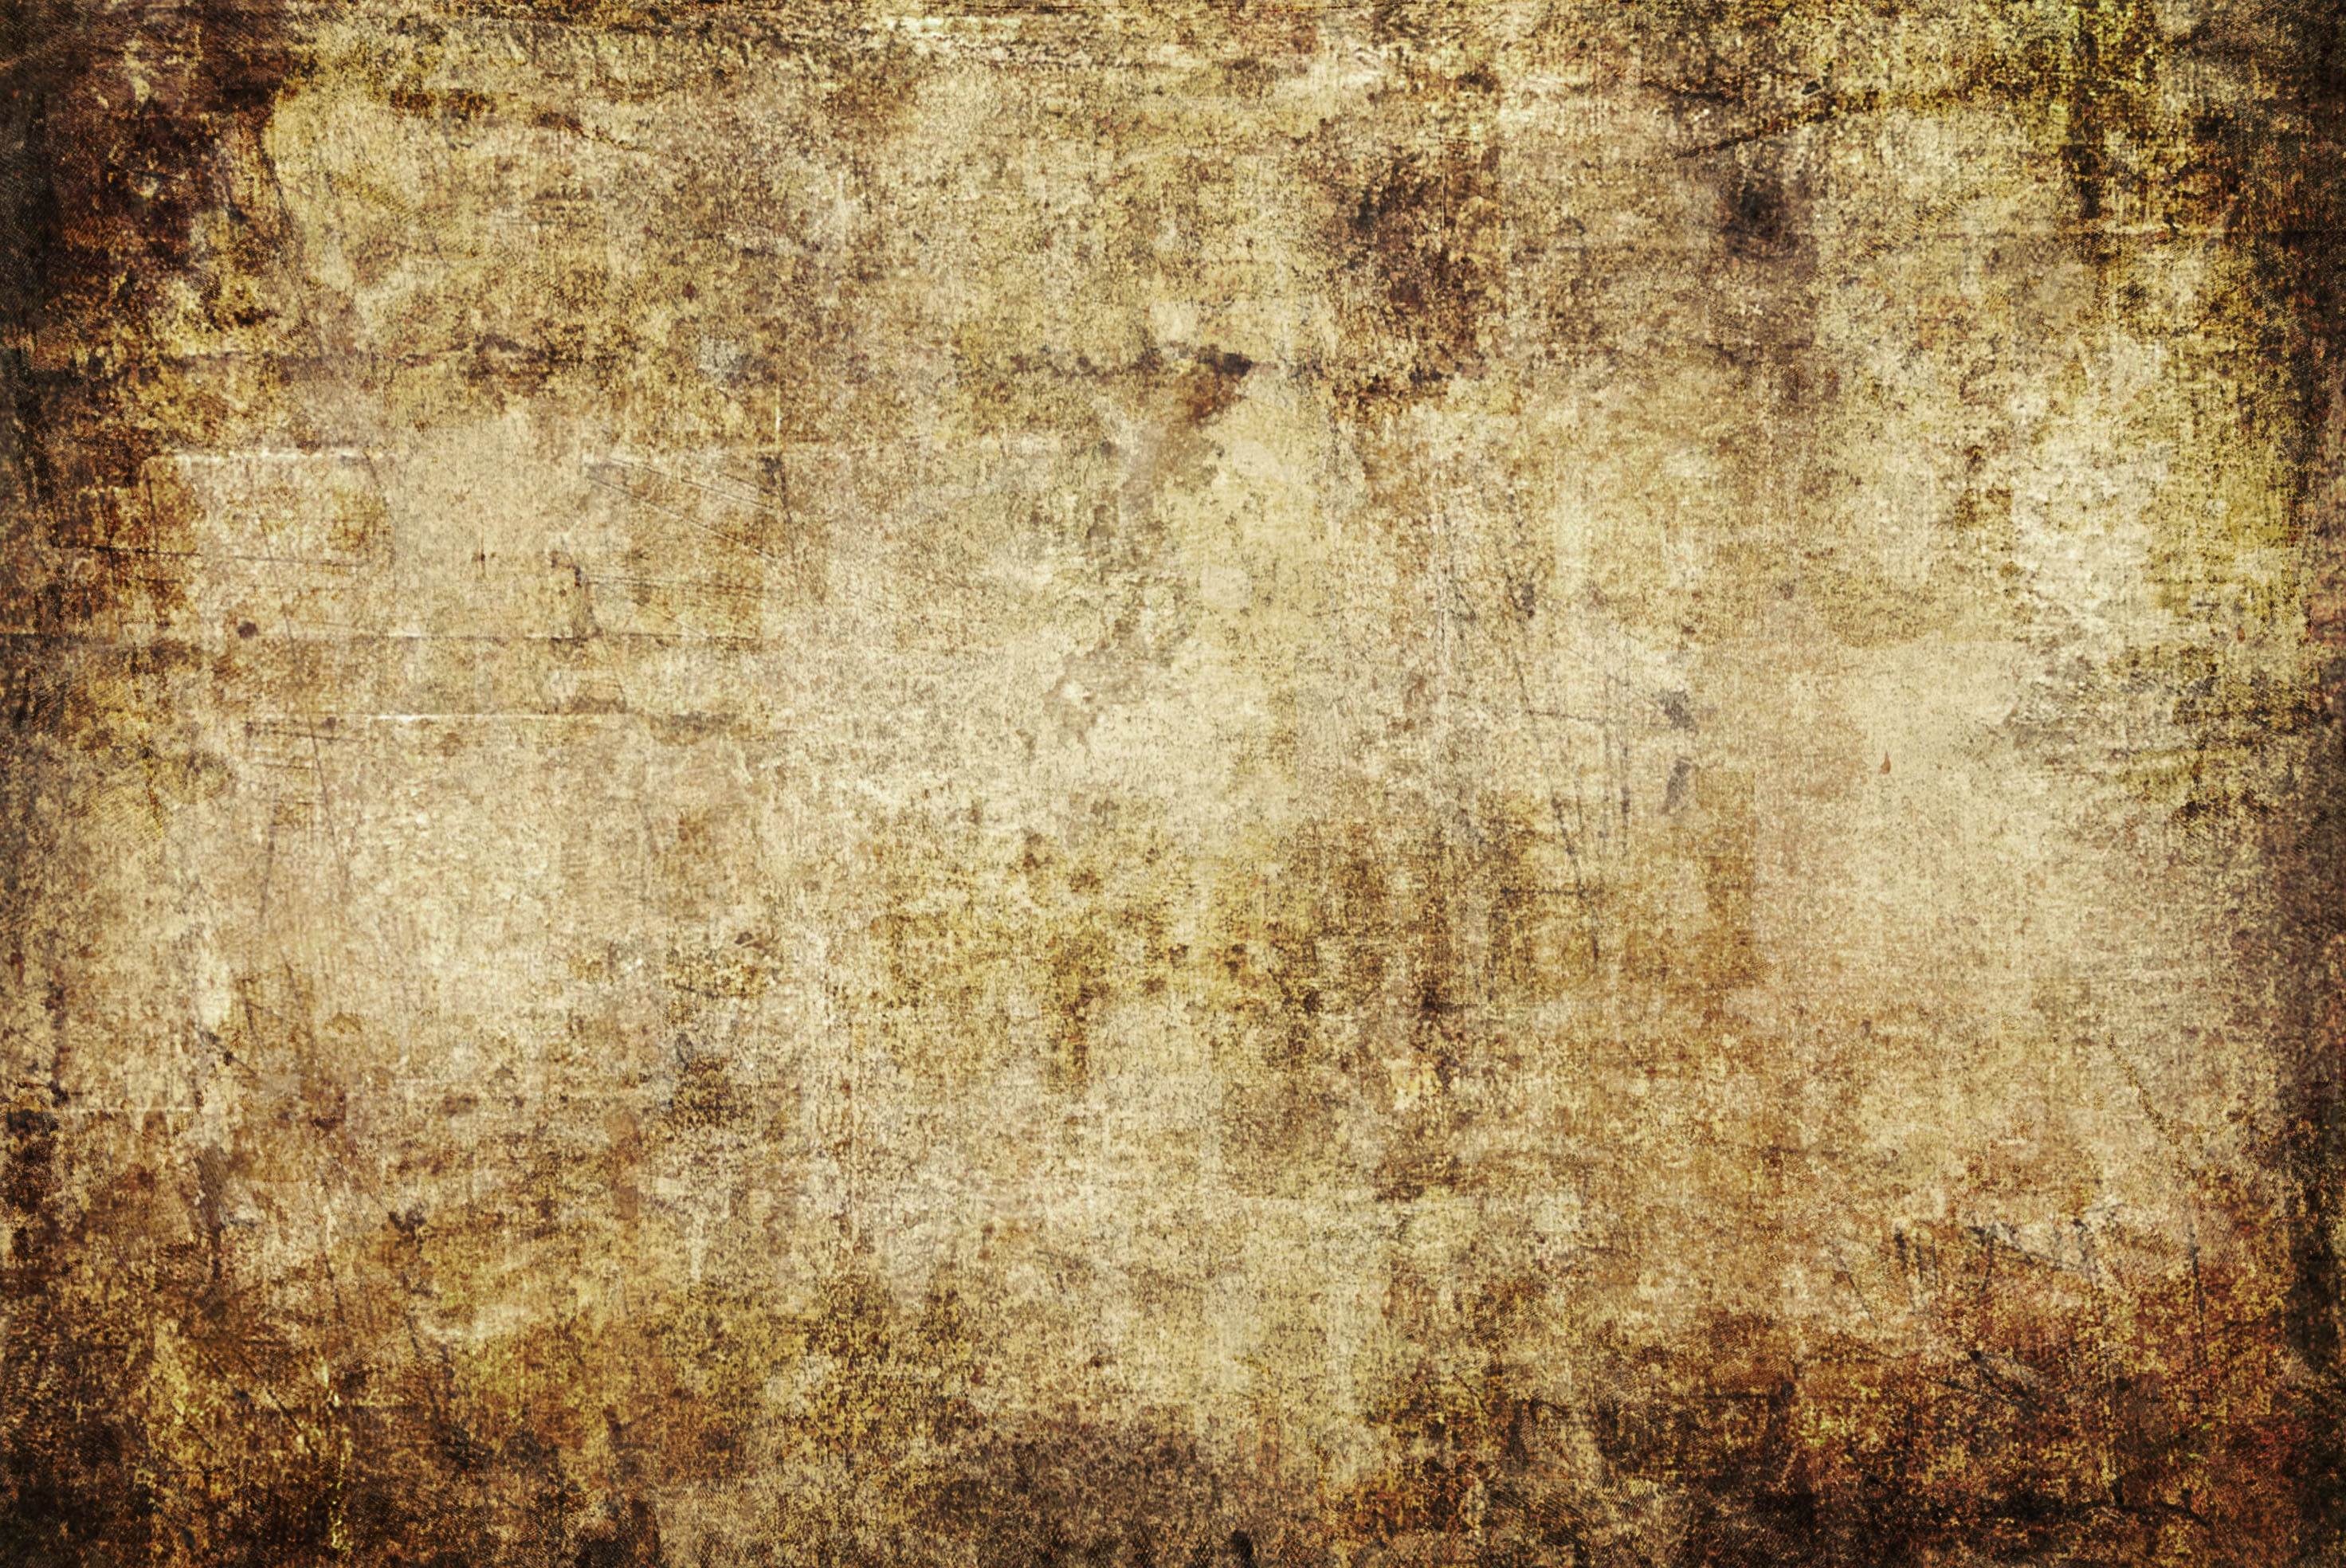 69853 download wallpaper Textures, Texture, Stains, Spots, Background, Lines, Mud, Dirt screensavers and pictures for free